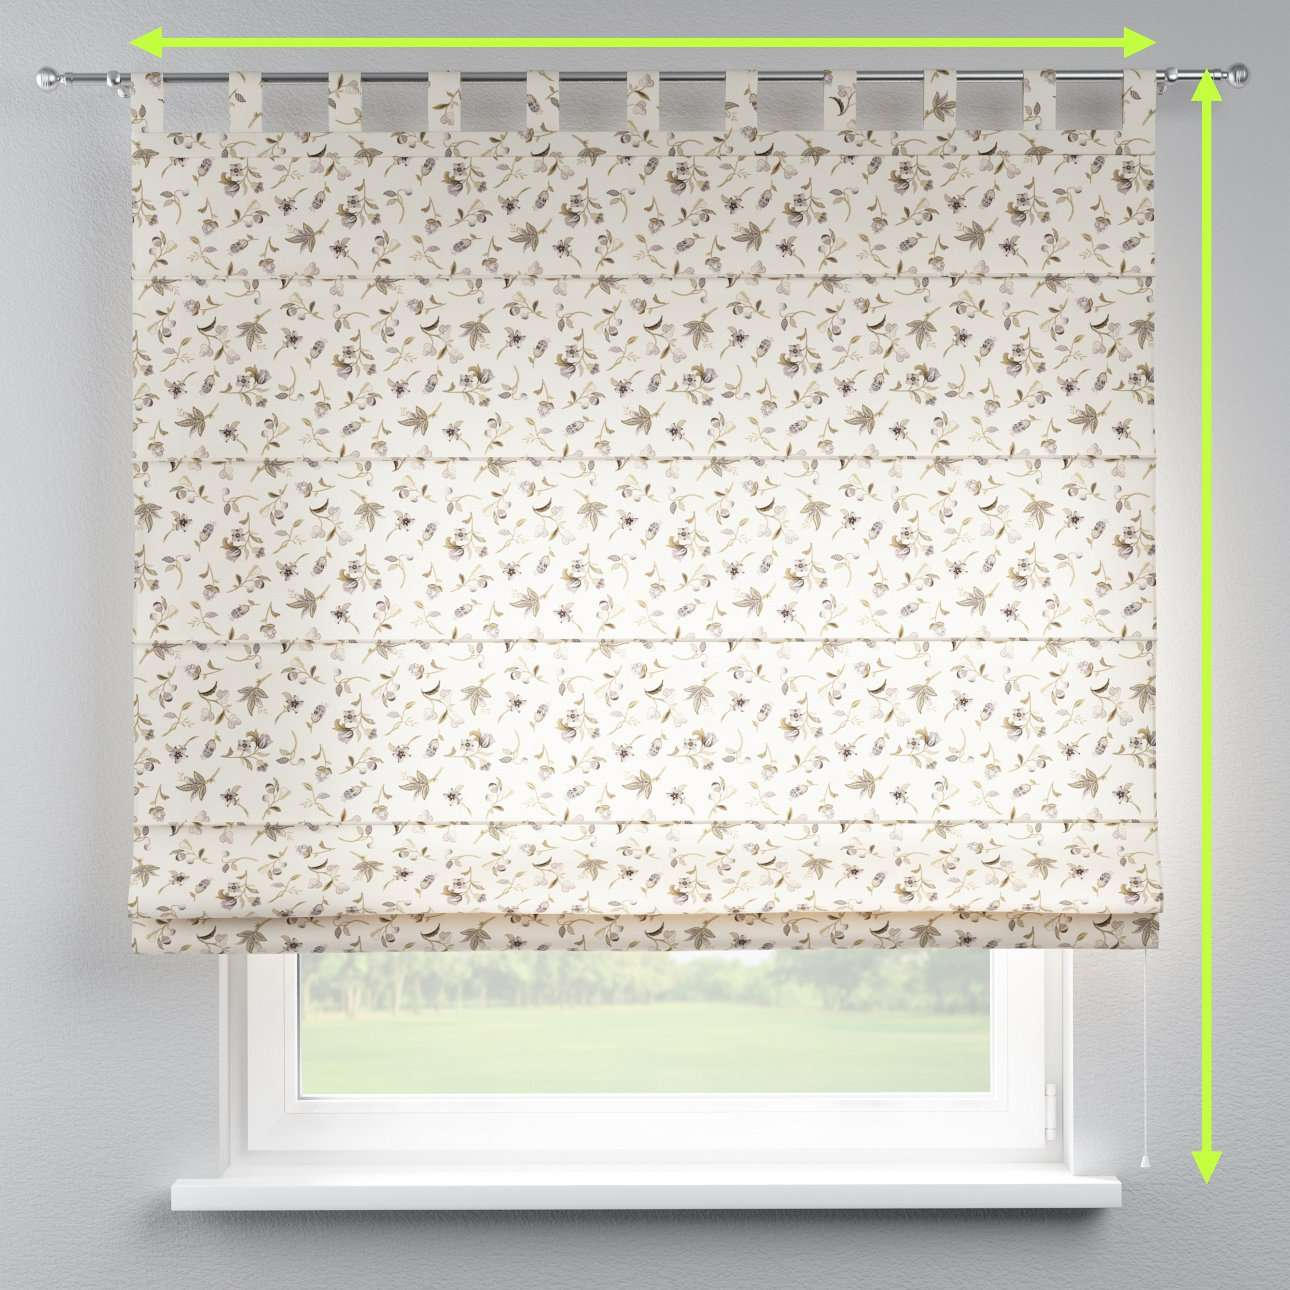 Verona tab top roman blind in collection Londres, fabric: 122-04